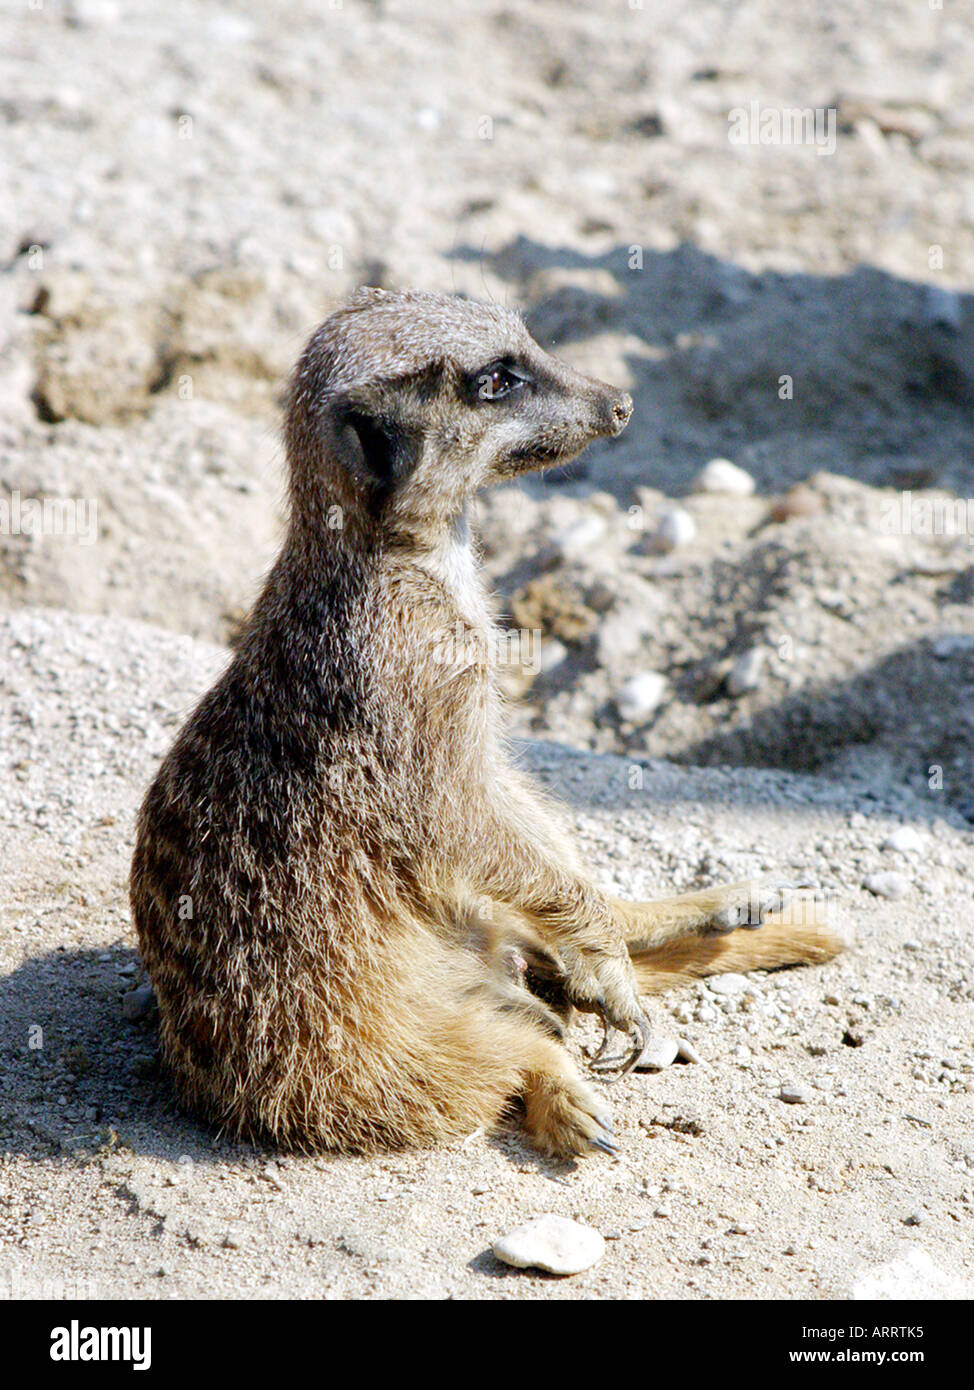 A meercat relaxing in the sun. - Stock Image